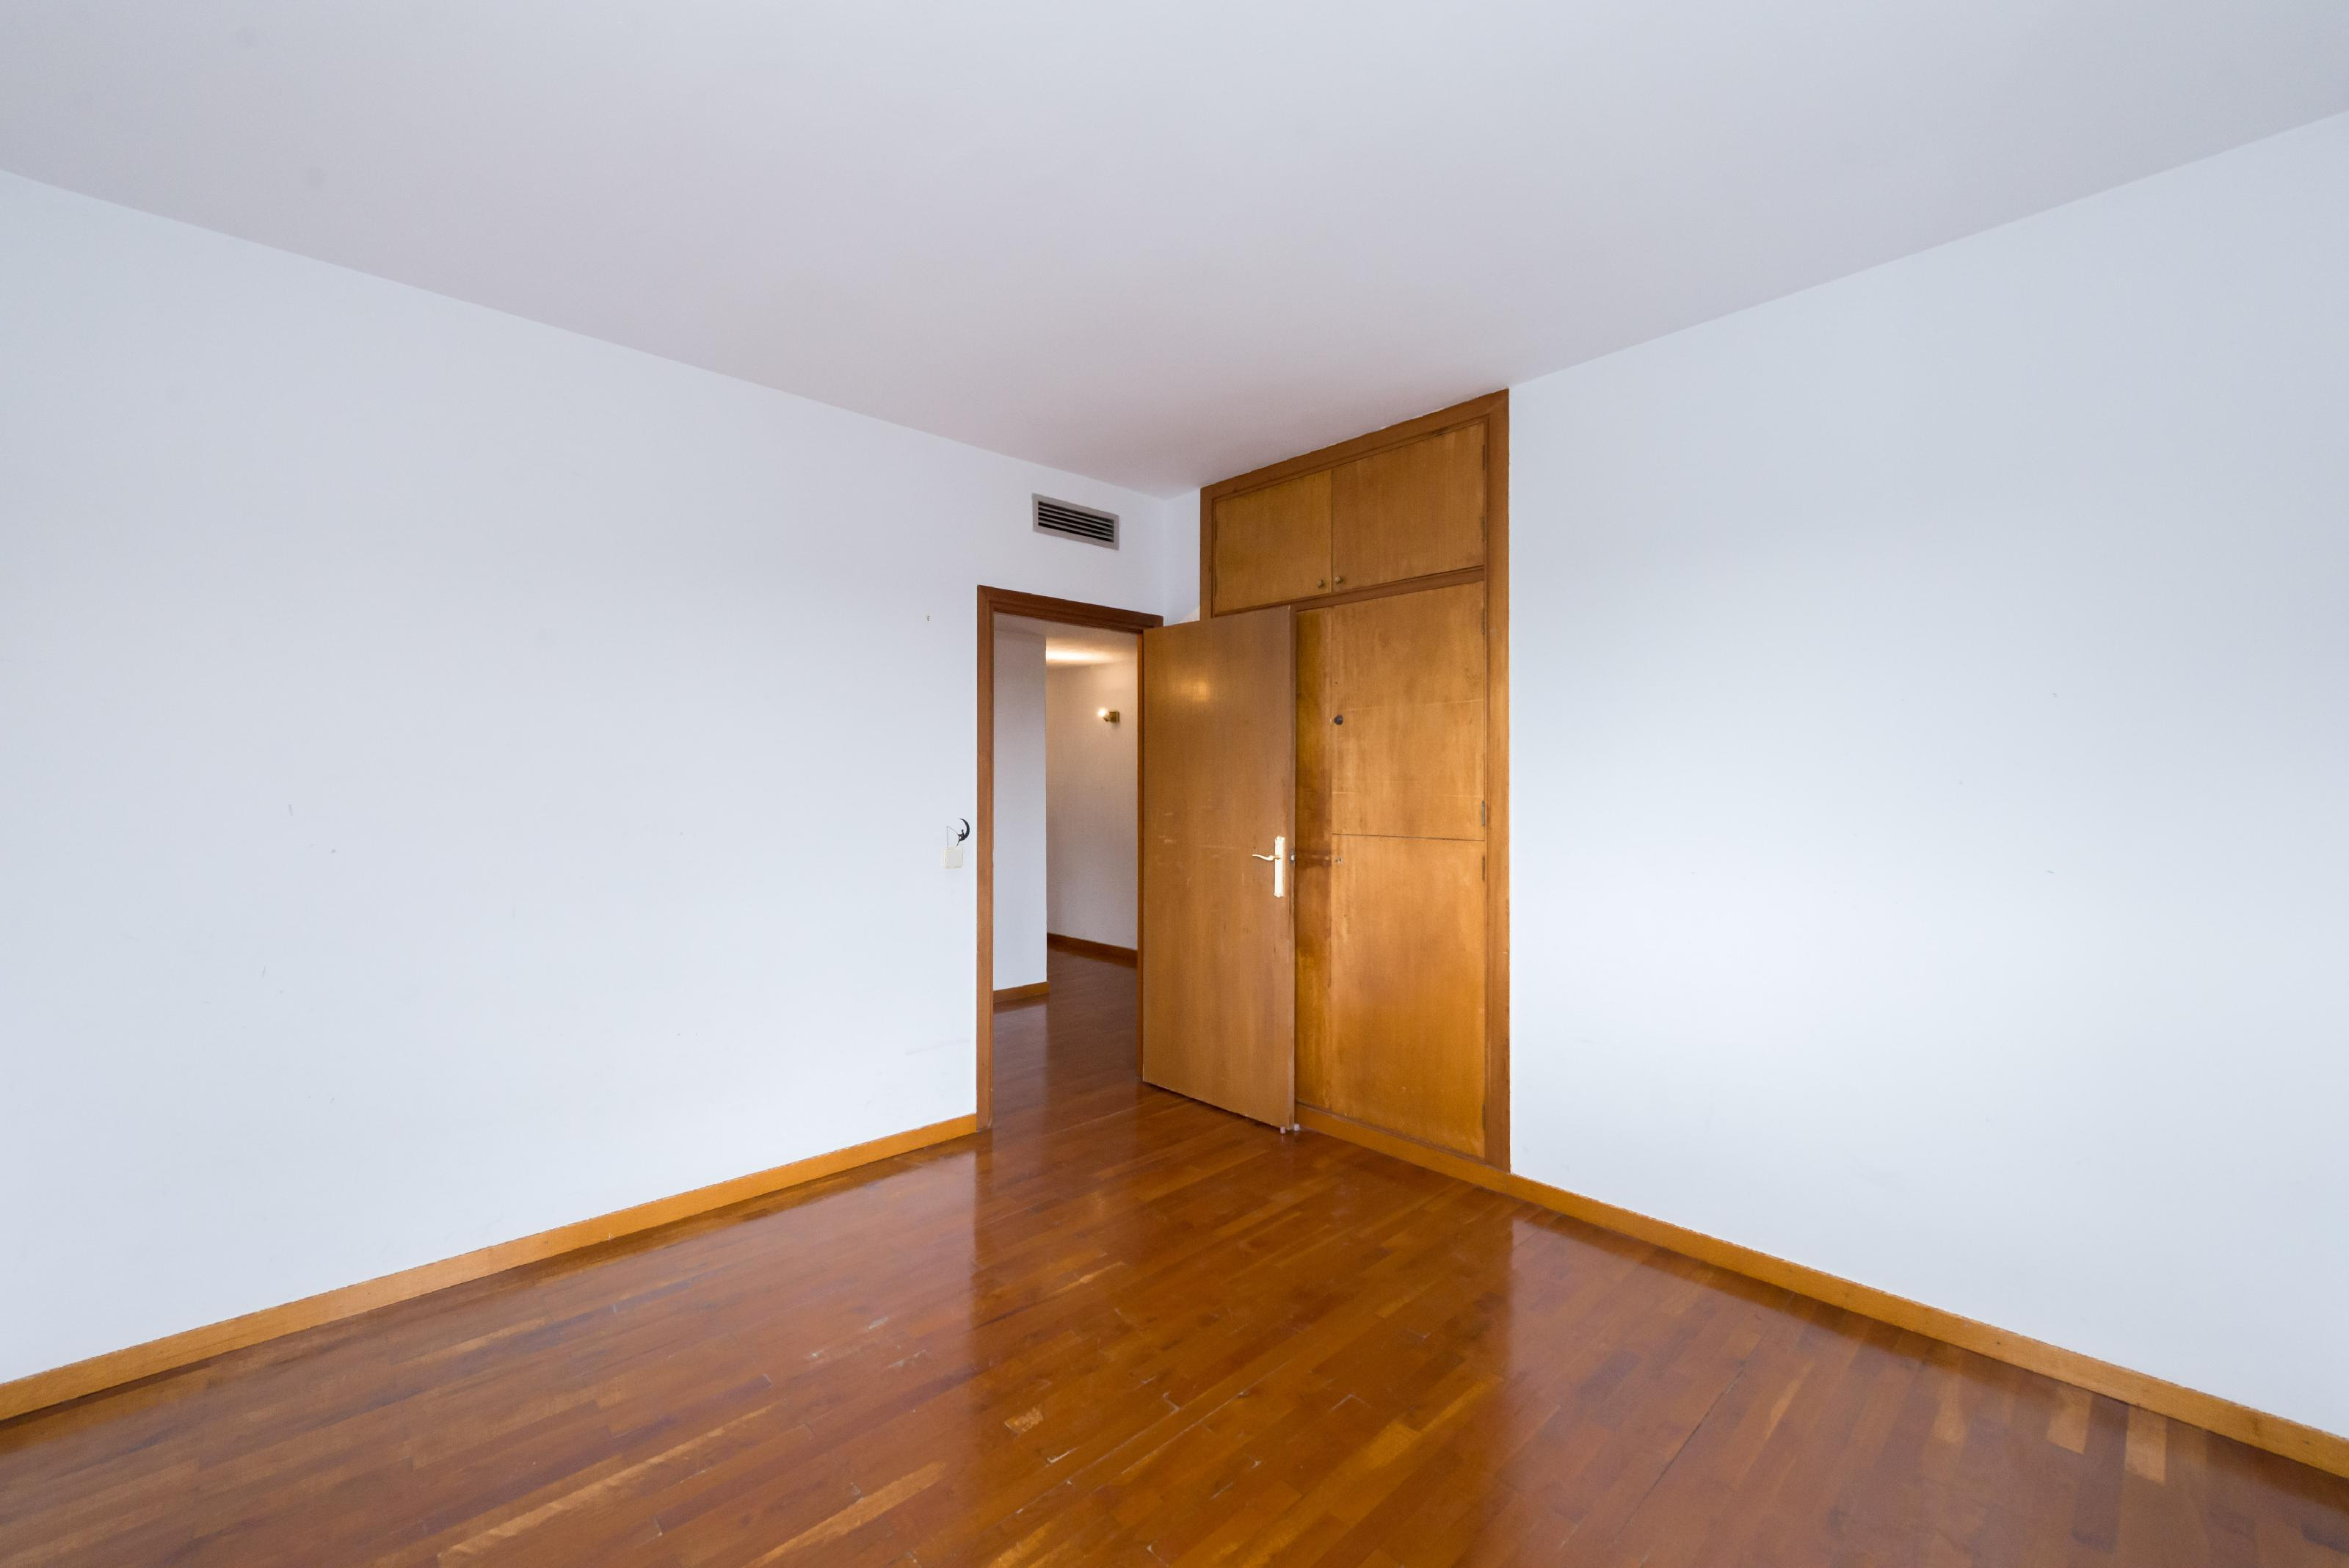 245495 Penthouse for sale in Les Corts, Pedralbes 31